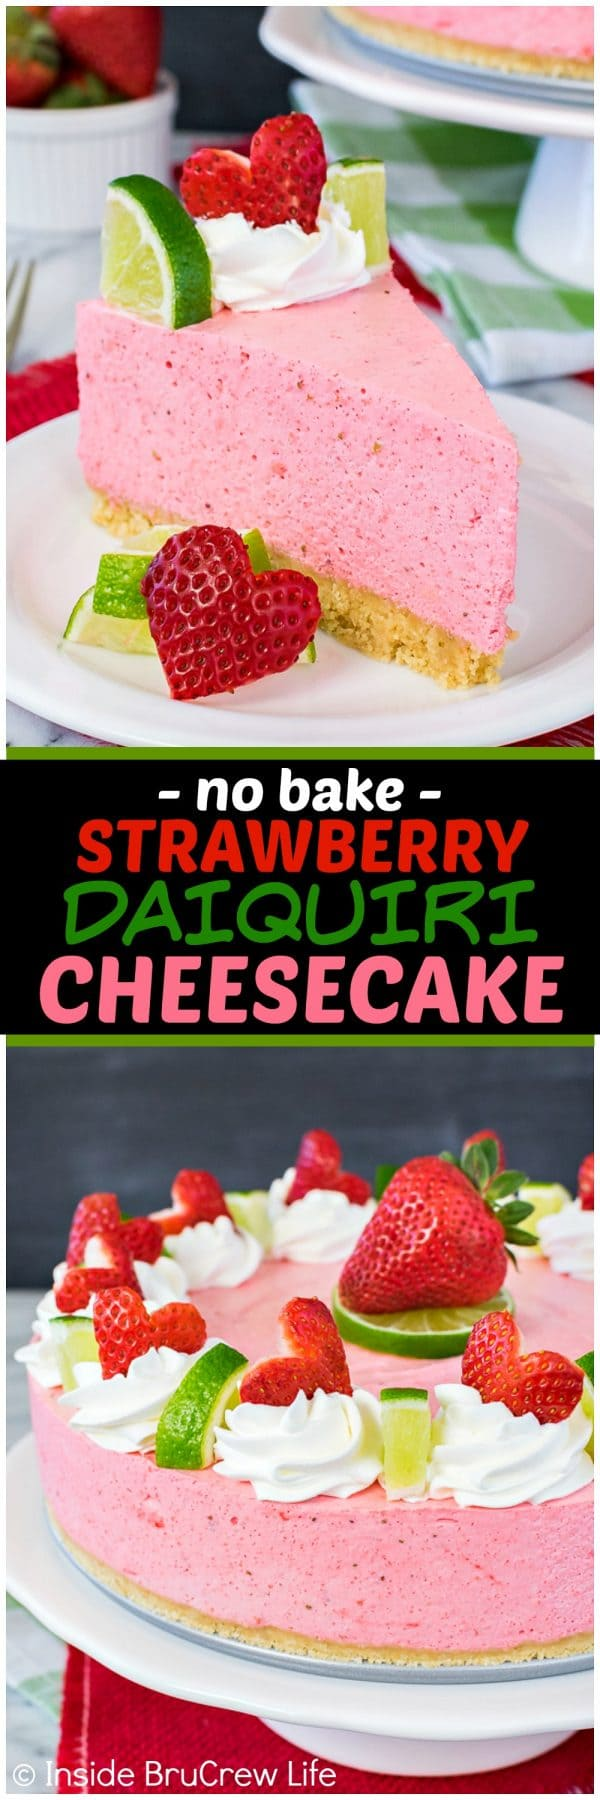 No Bake Strawberry Daiquiri Cheesecake - this light and fluffy mousse cake is full of strawberry and lime flavor! Easy no bake dessert recipe for hot summer days!